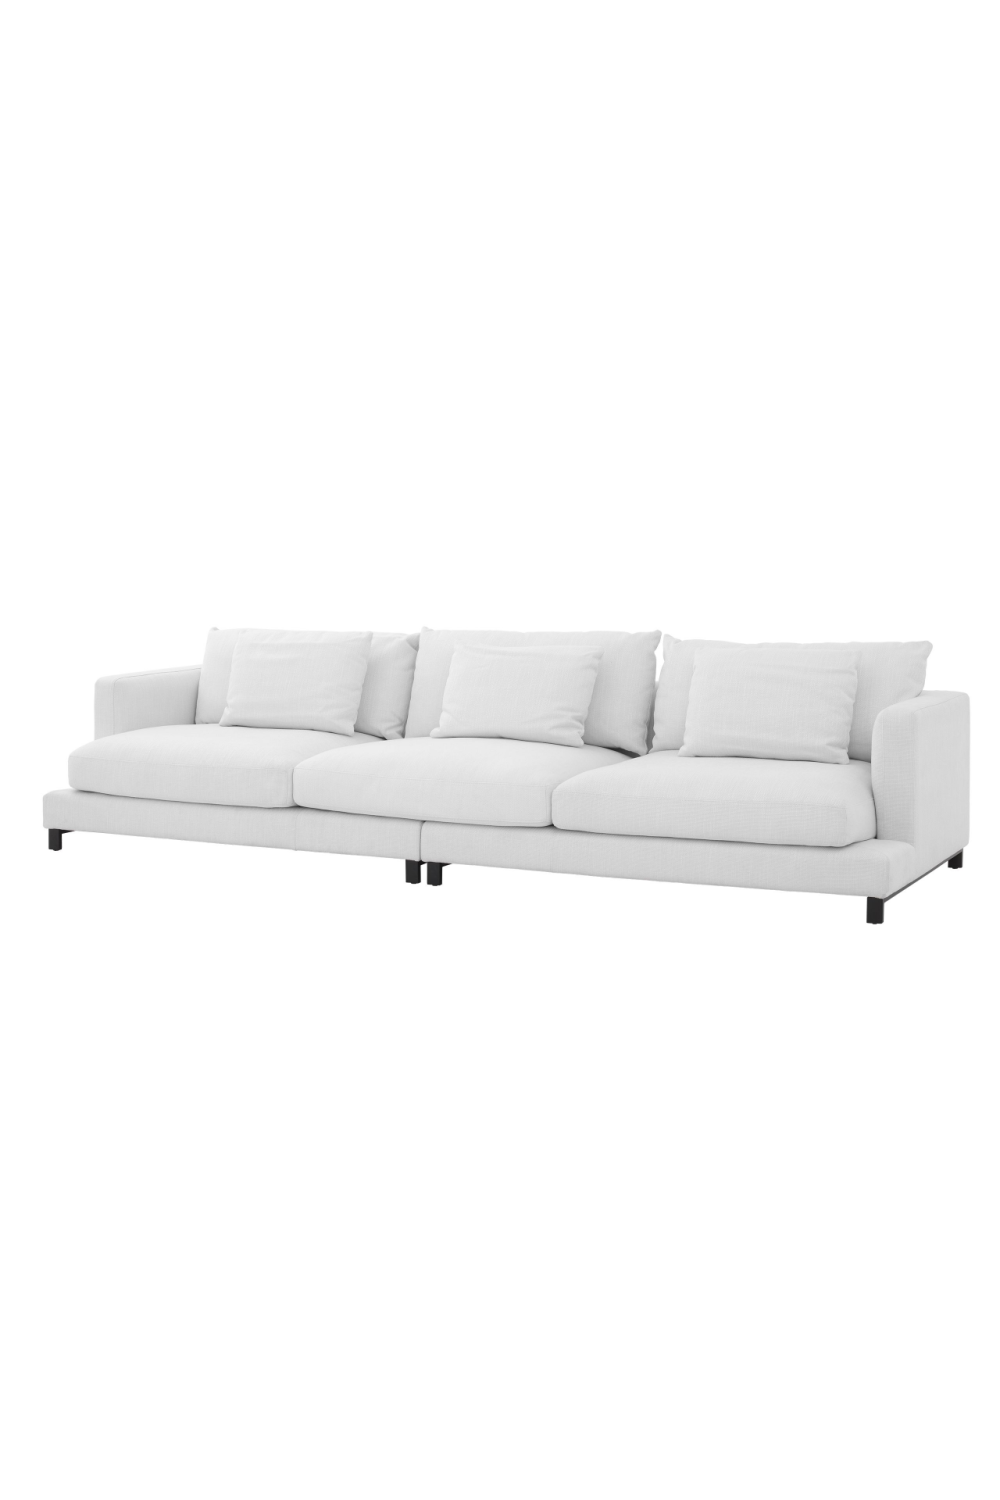 White 3-Seater Sofa | Eichholtz Burbury